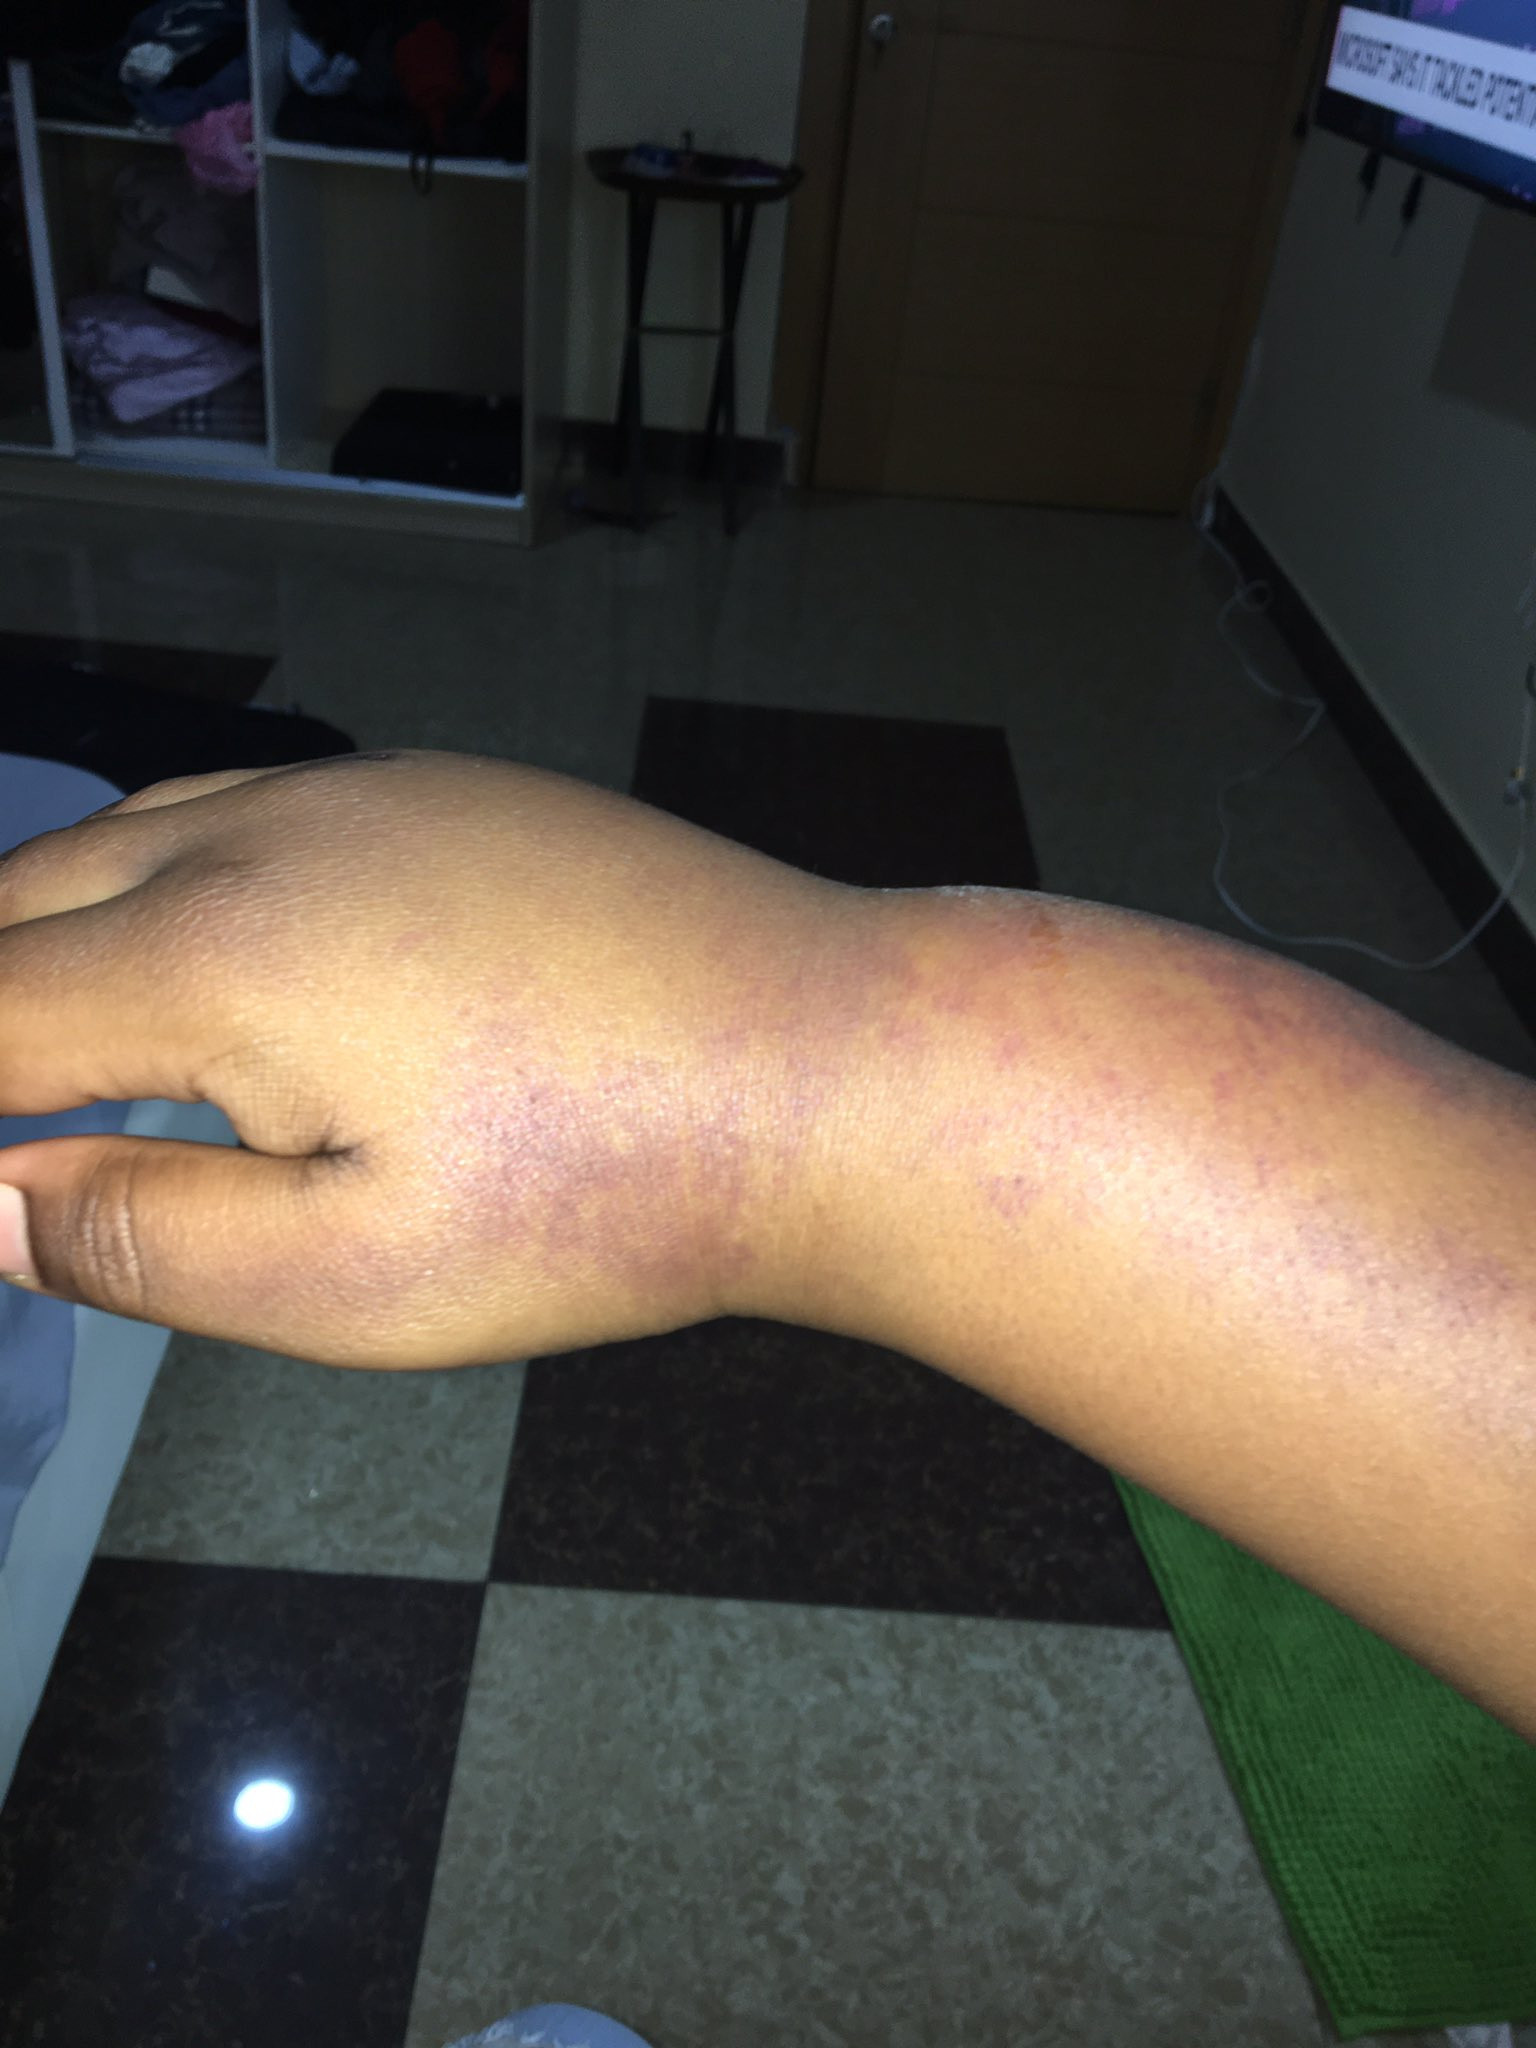 #EndSARS protester accuses police of brutalizing her during the peaceful protest in Abuja (photos)